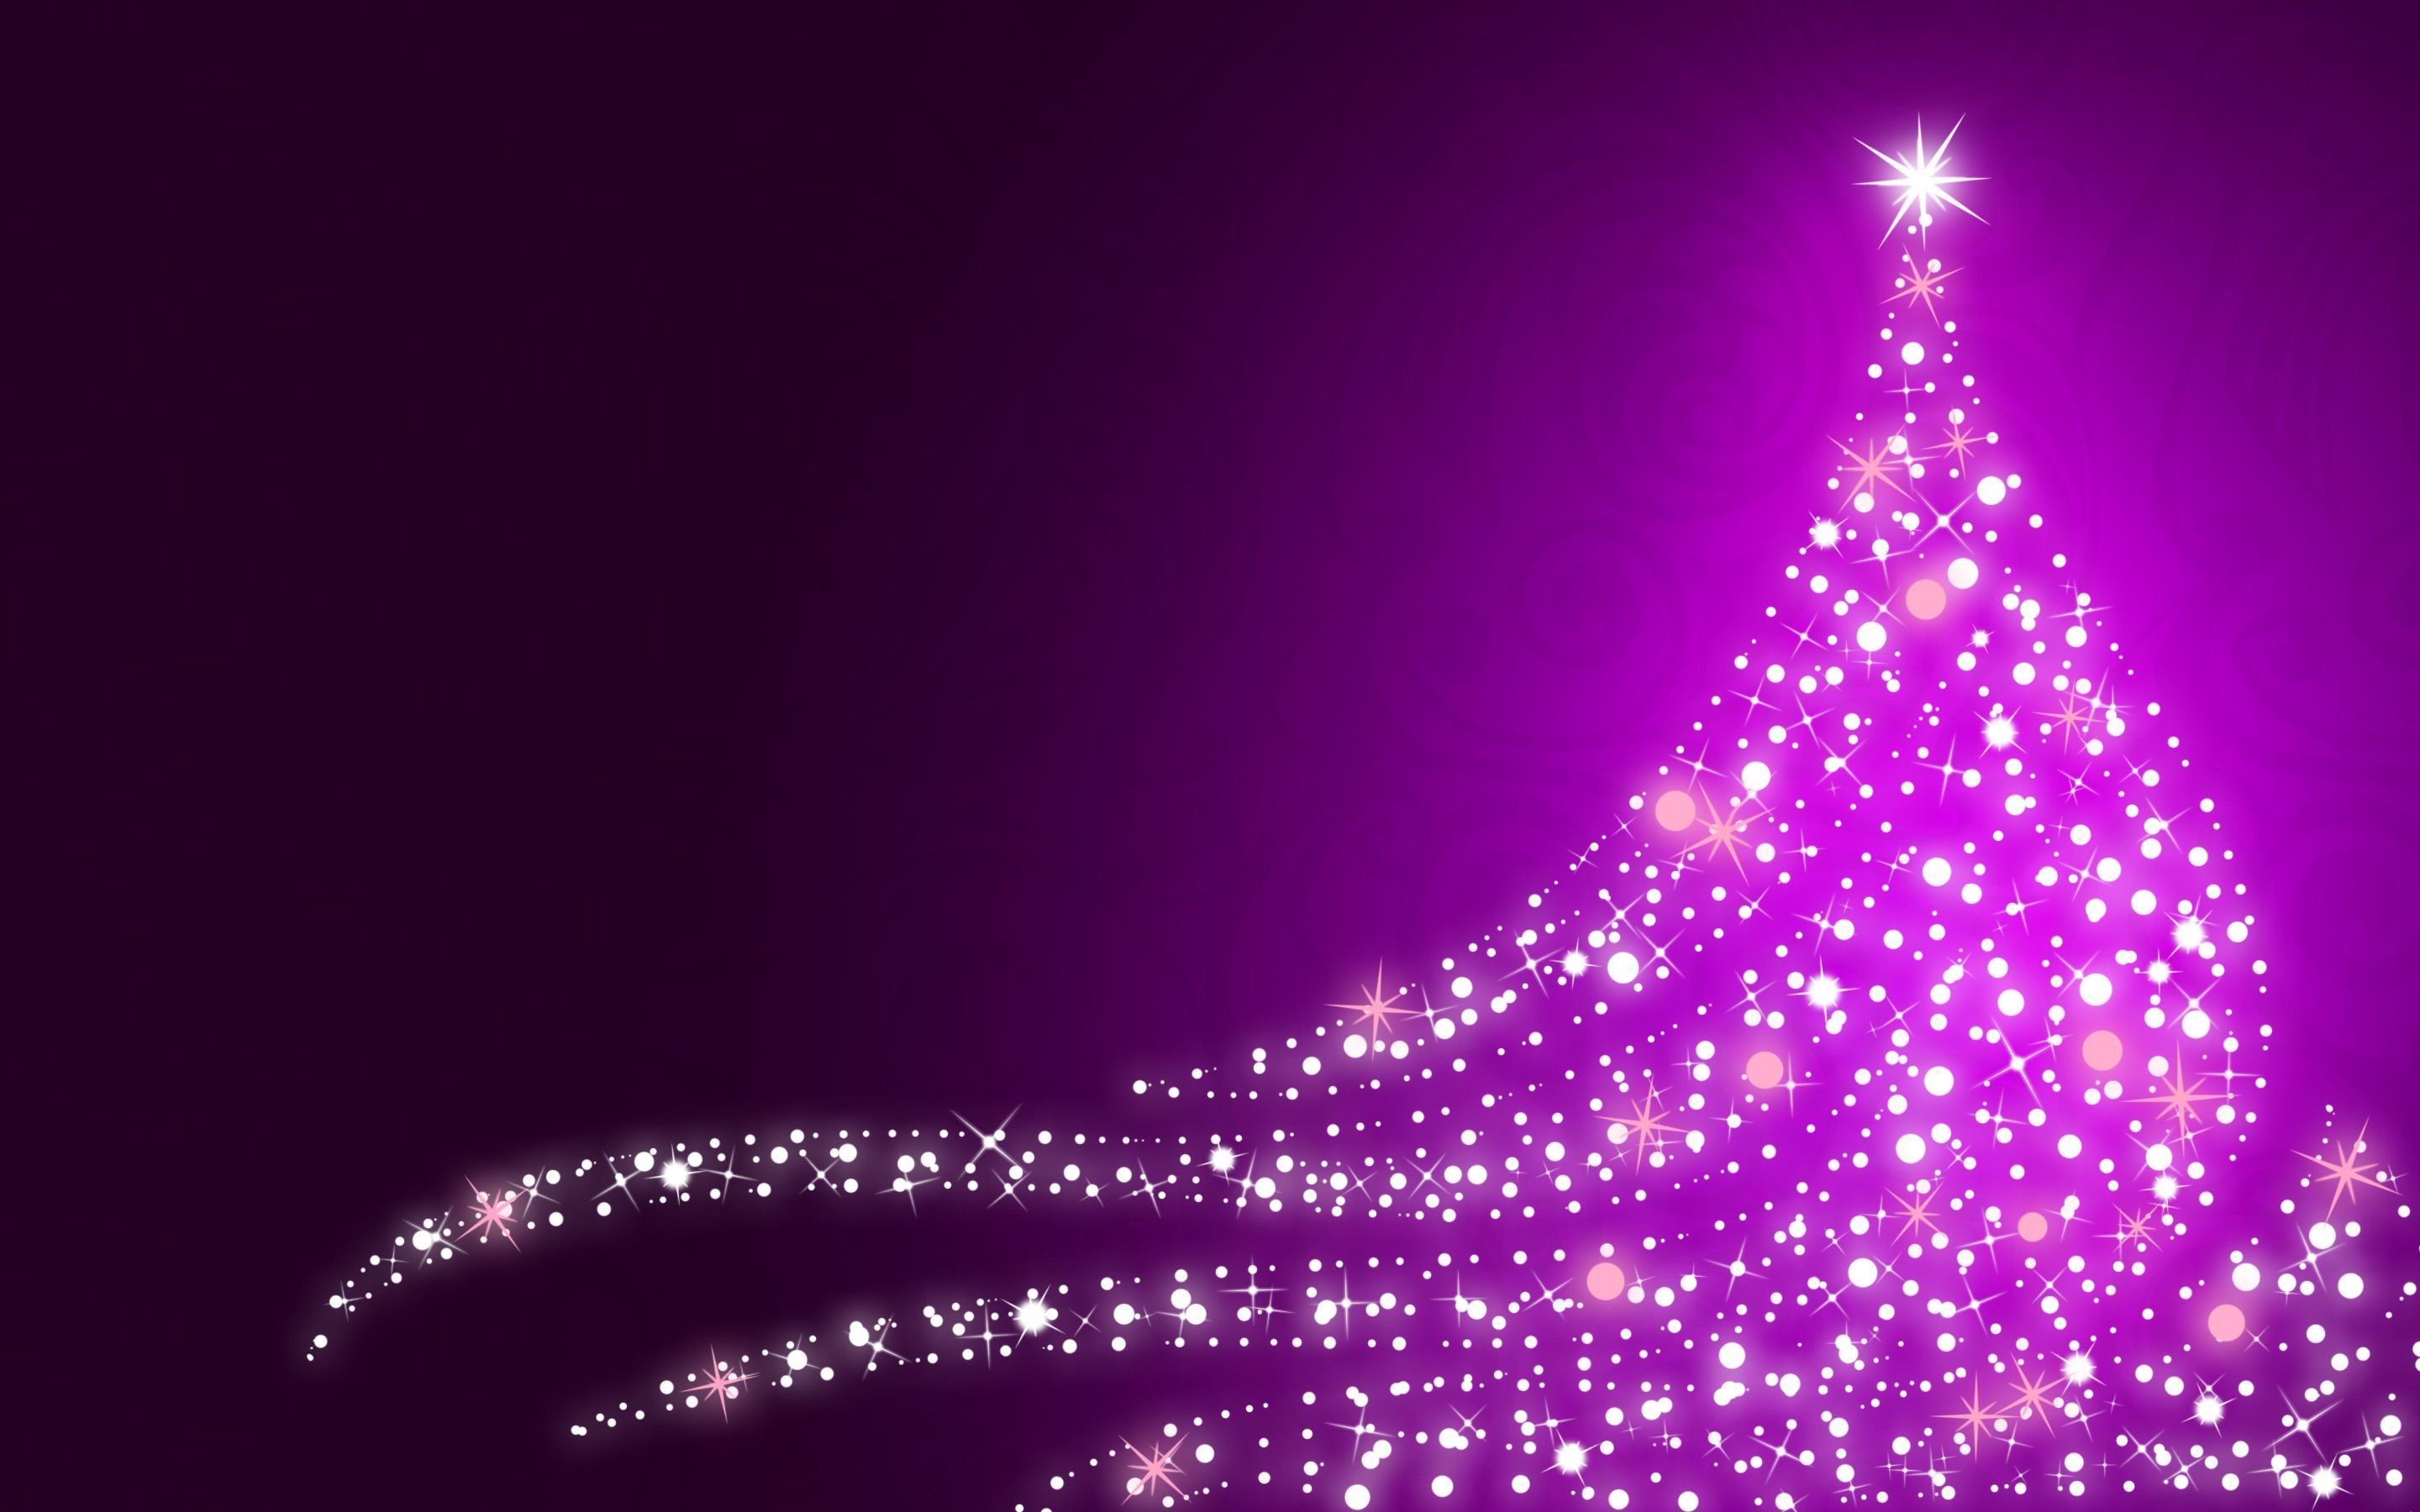 Purple Christmas Wallpaper